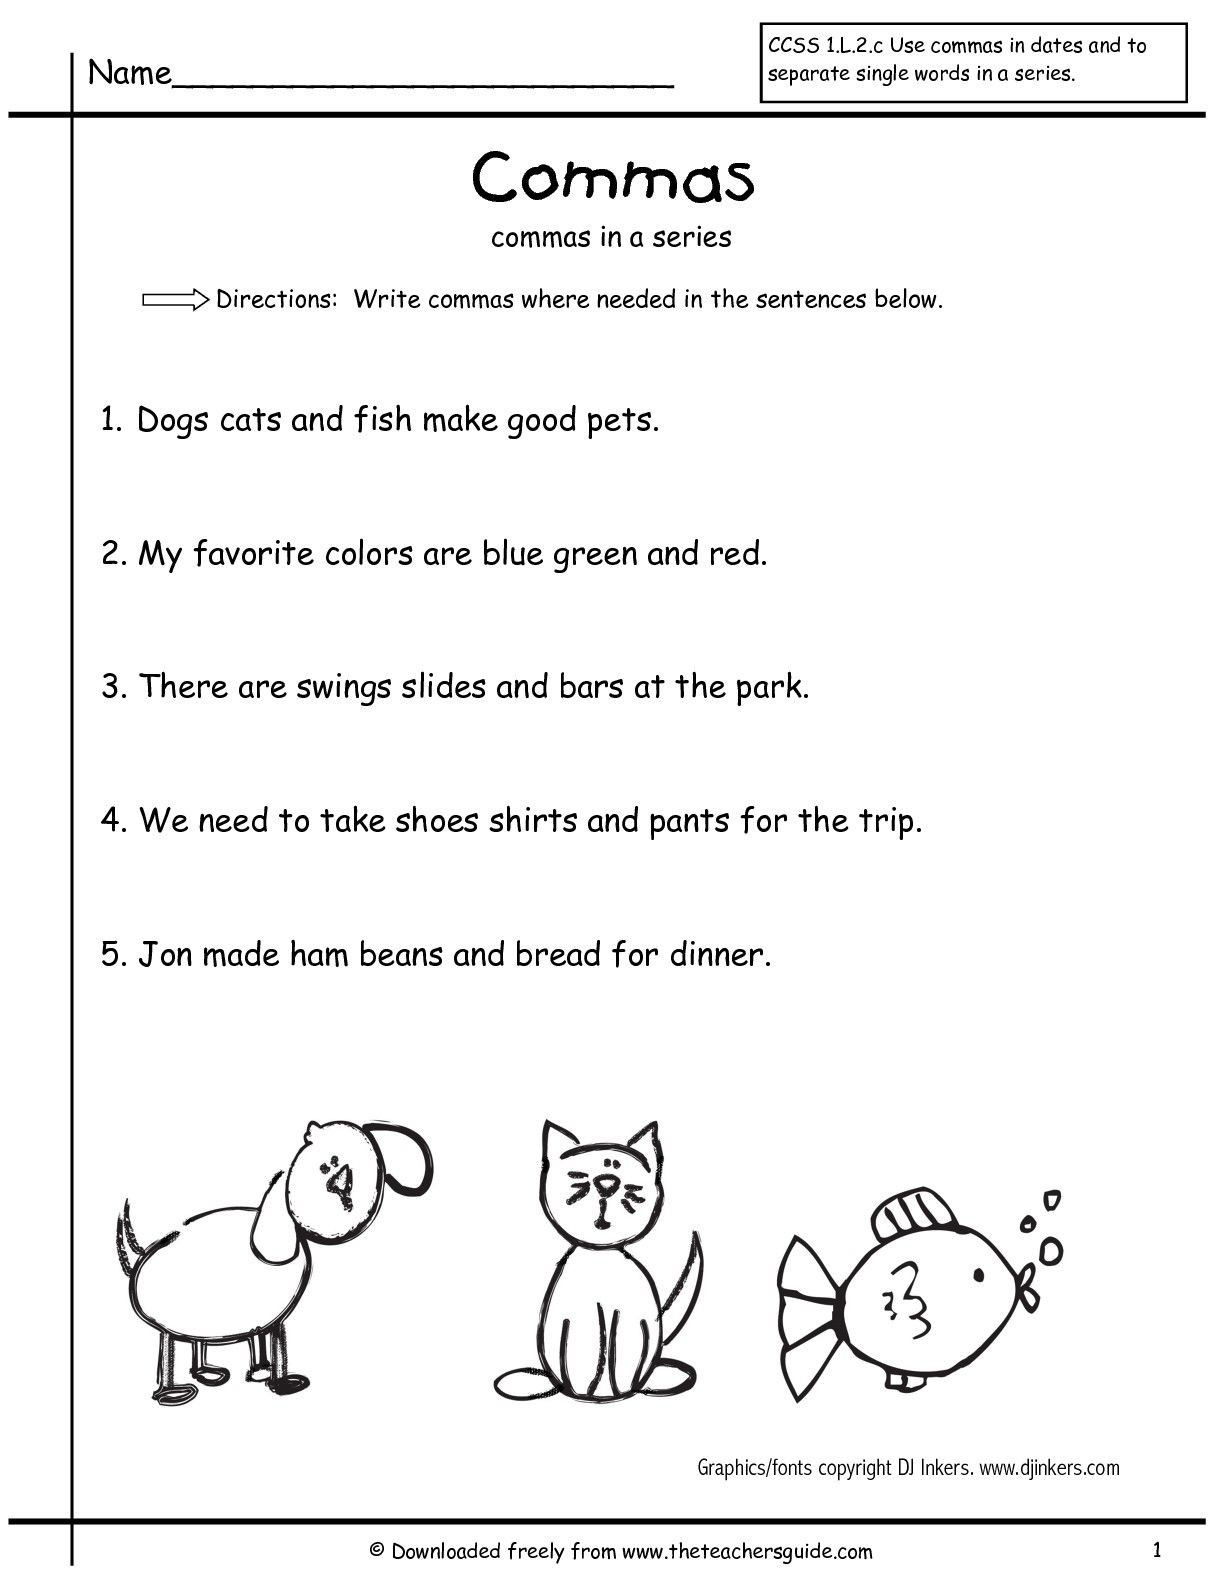 Comma Worksheets Middle School Grammar Worksheets Mas In A Series First Grade Free